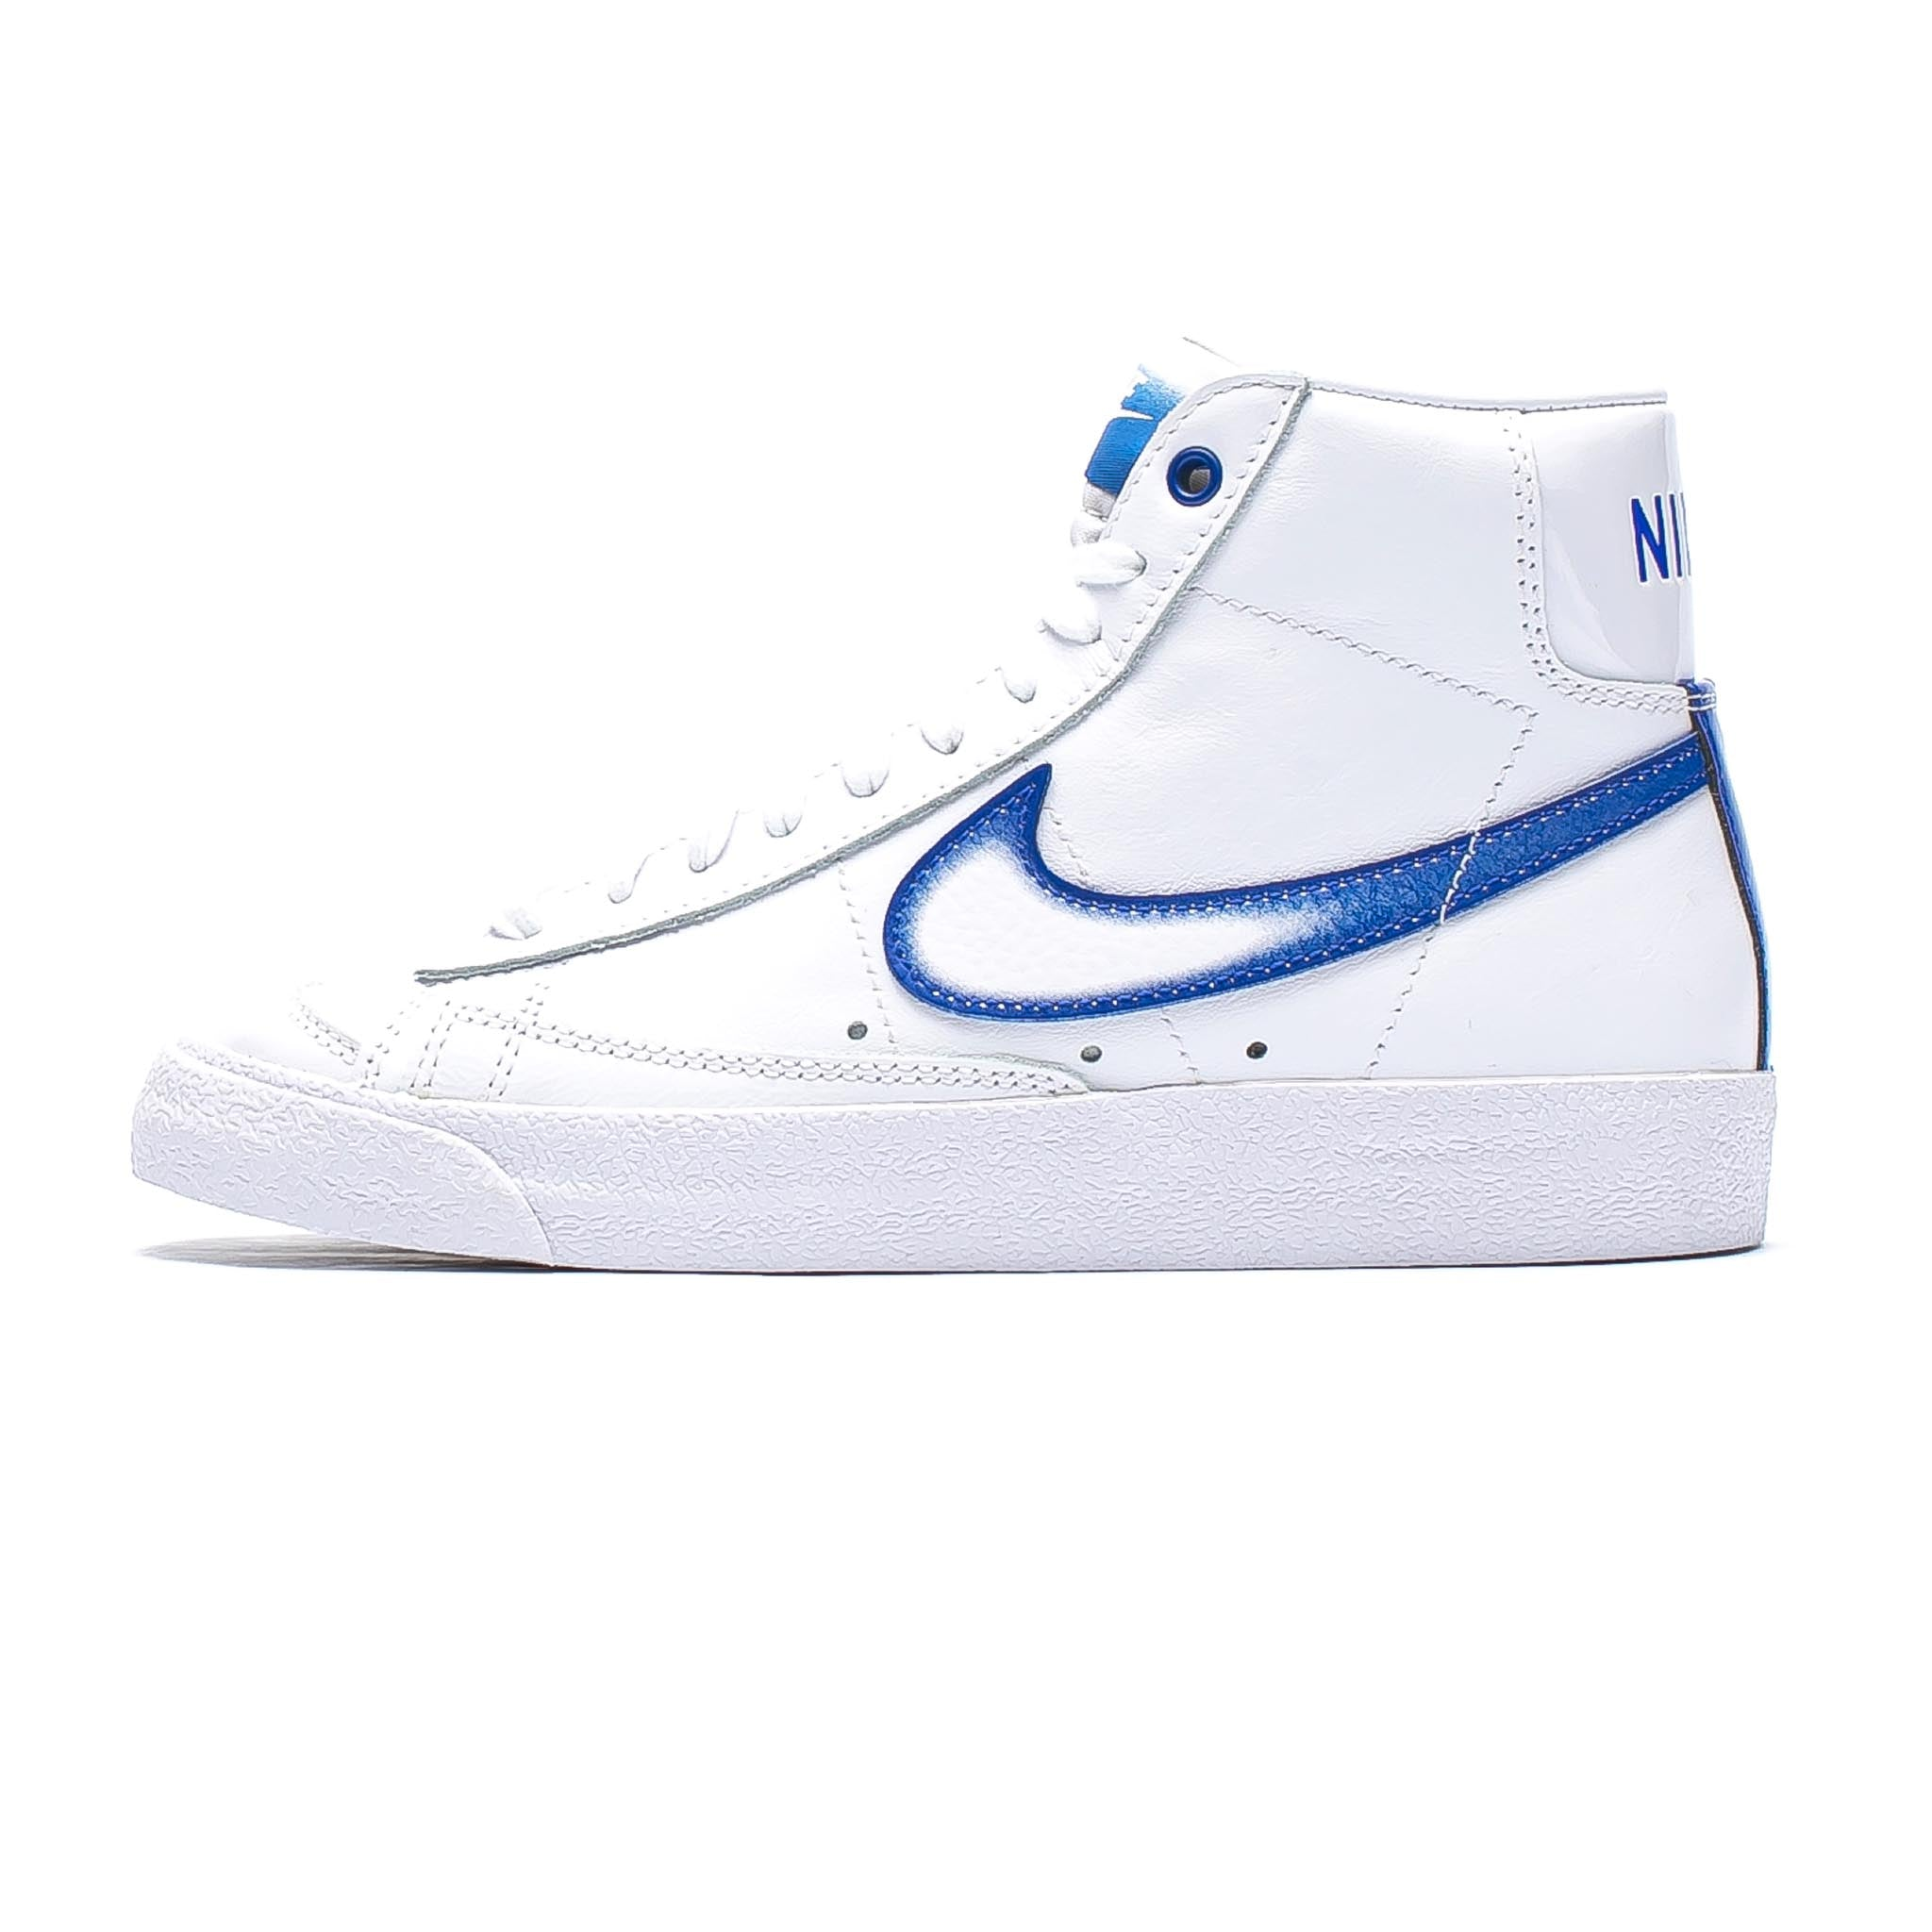 Nike Blazer Mid '77 'Airbrush' White/Royal